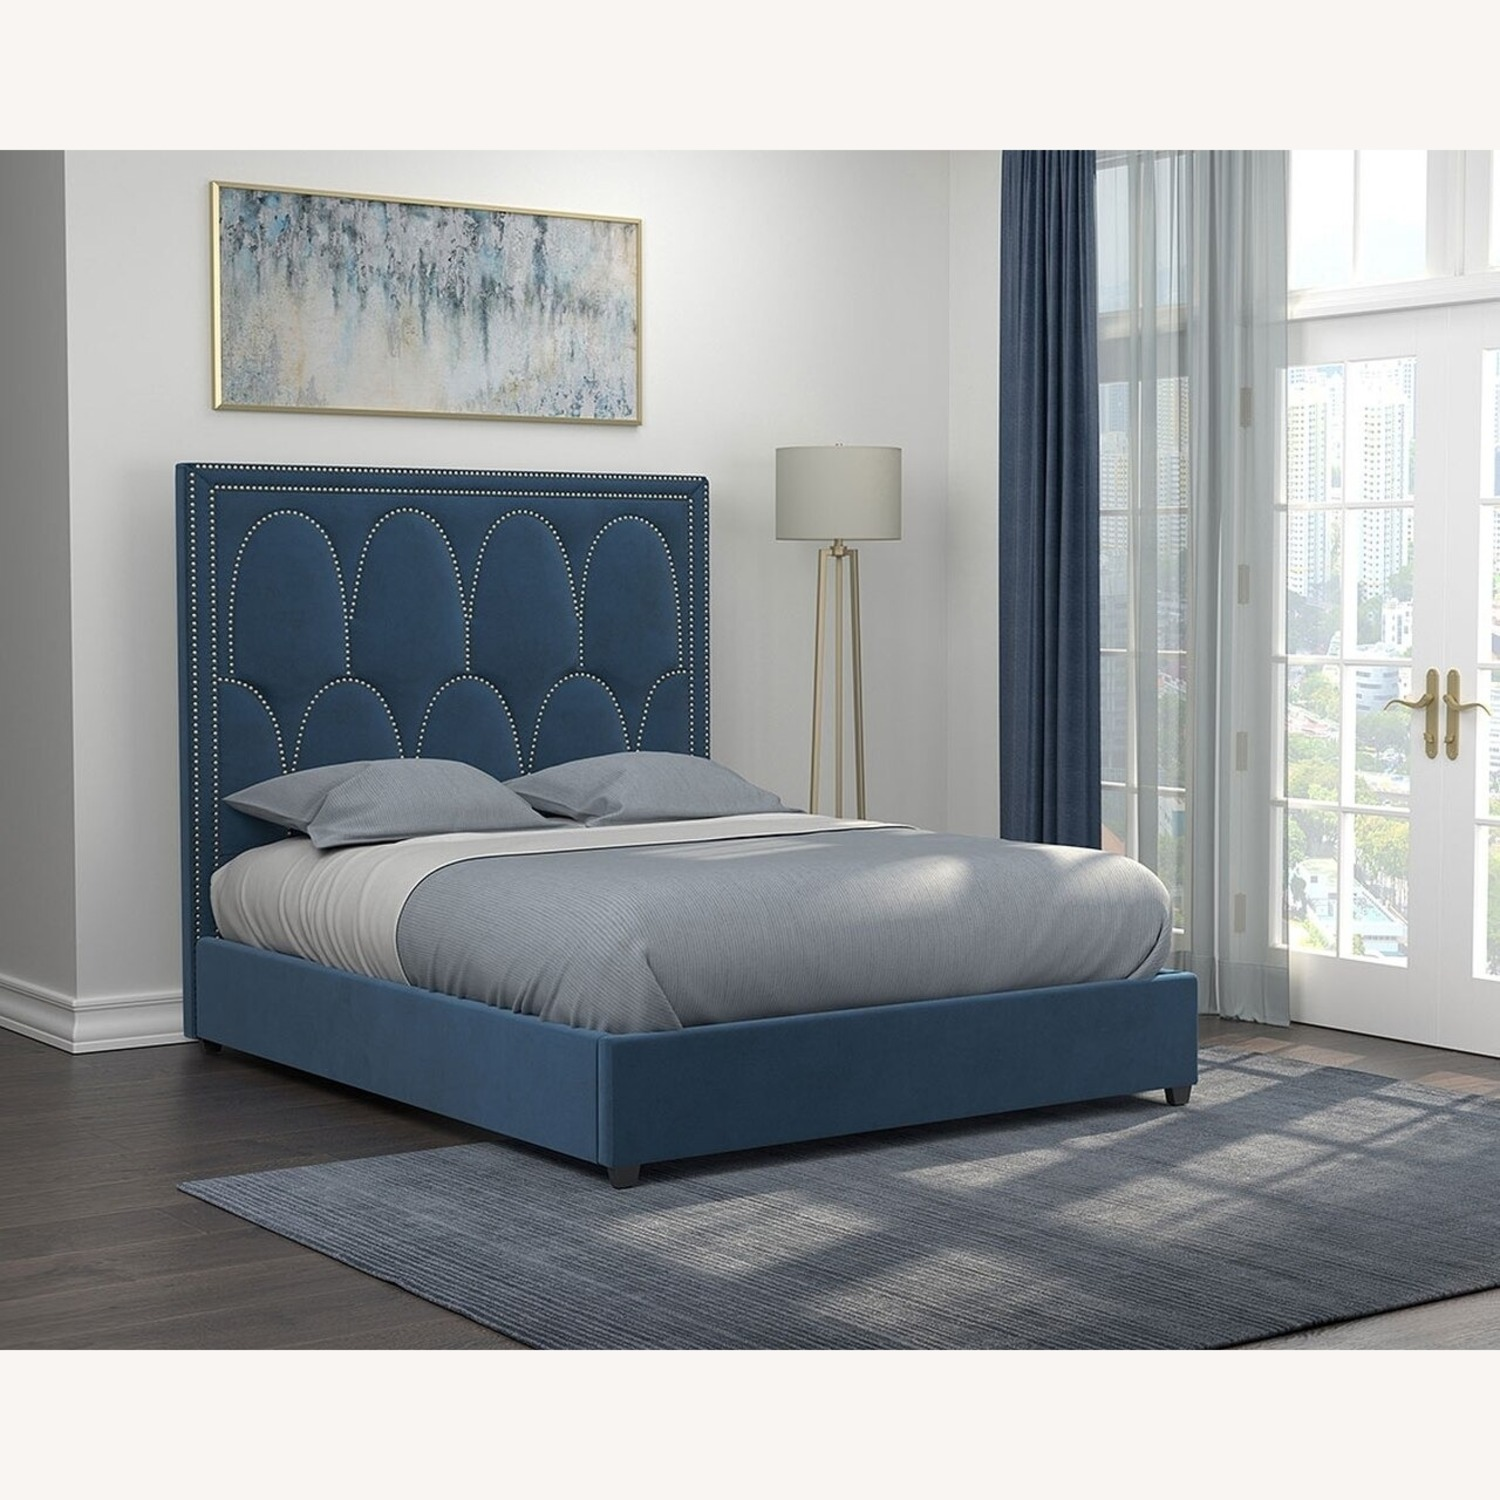 Queen Bed In A Rich Blue Velvet - image-2